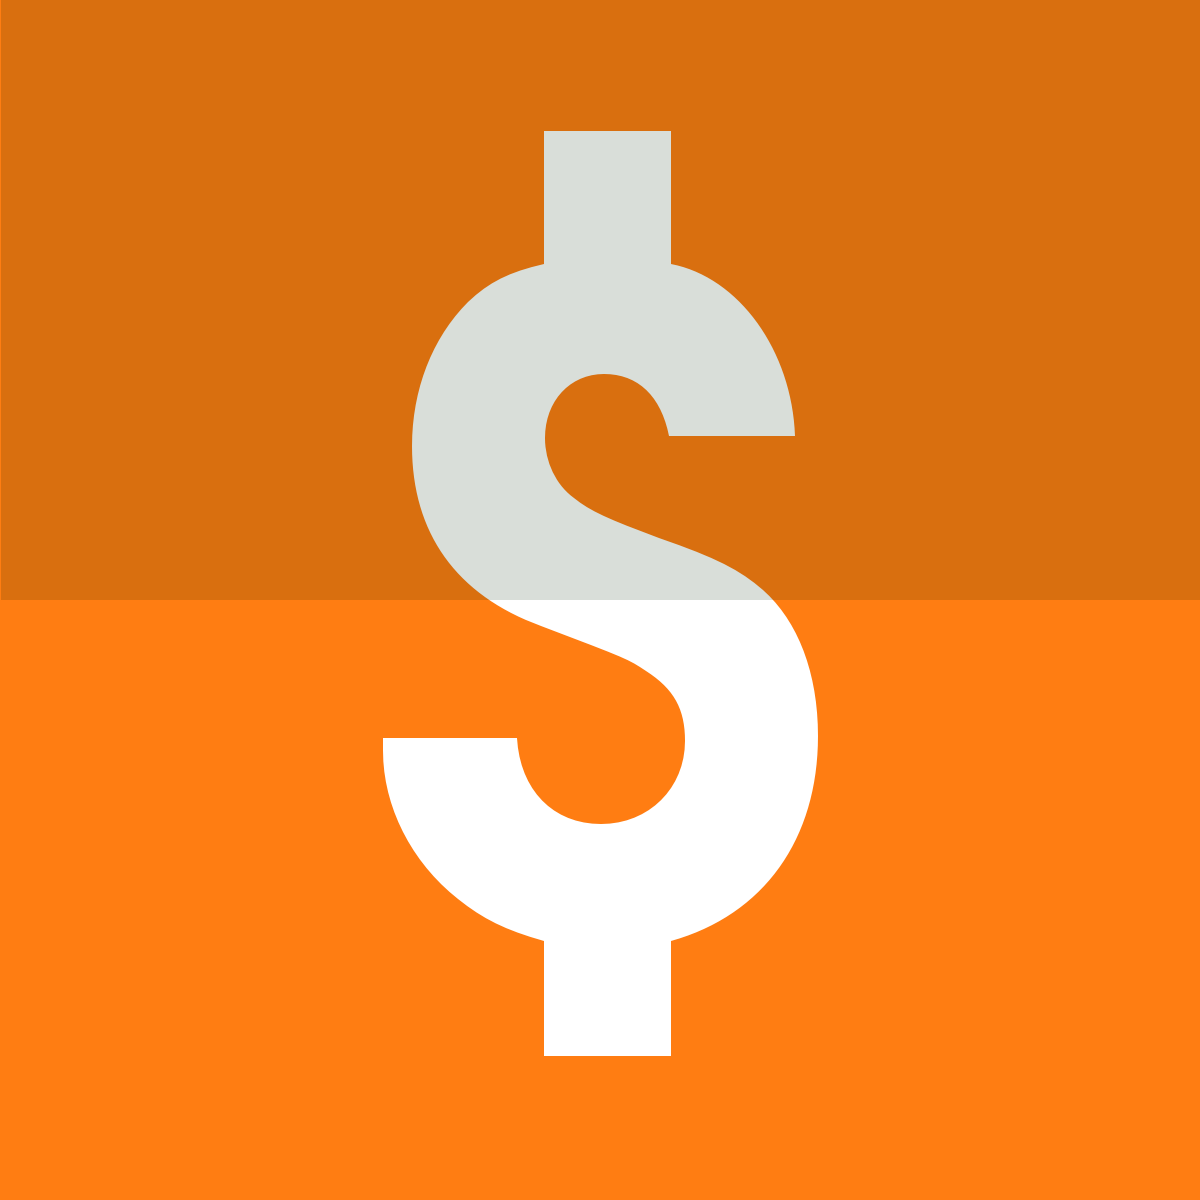 Hire Shopify Experts to integrate priceOps ‑ Dynamic prices app into a Shopify store